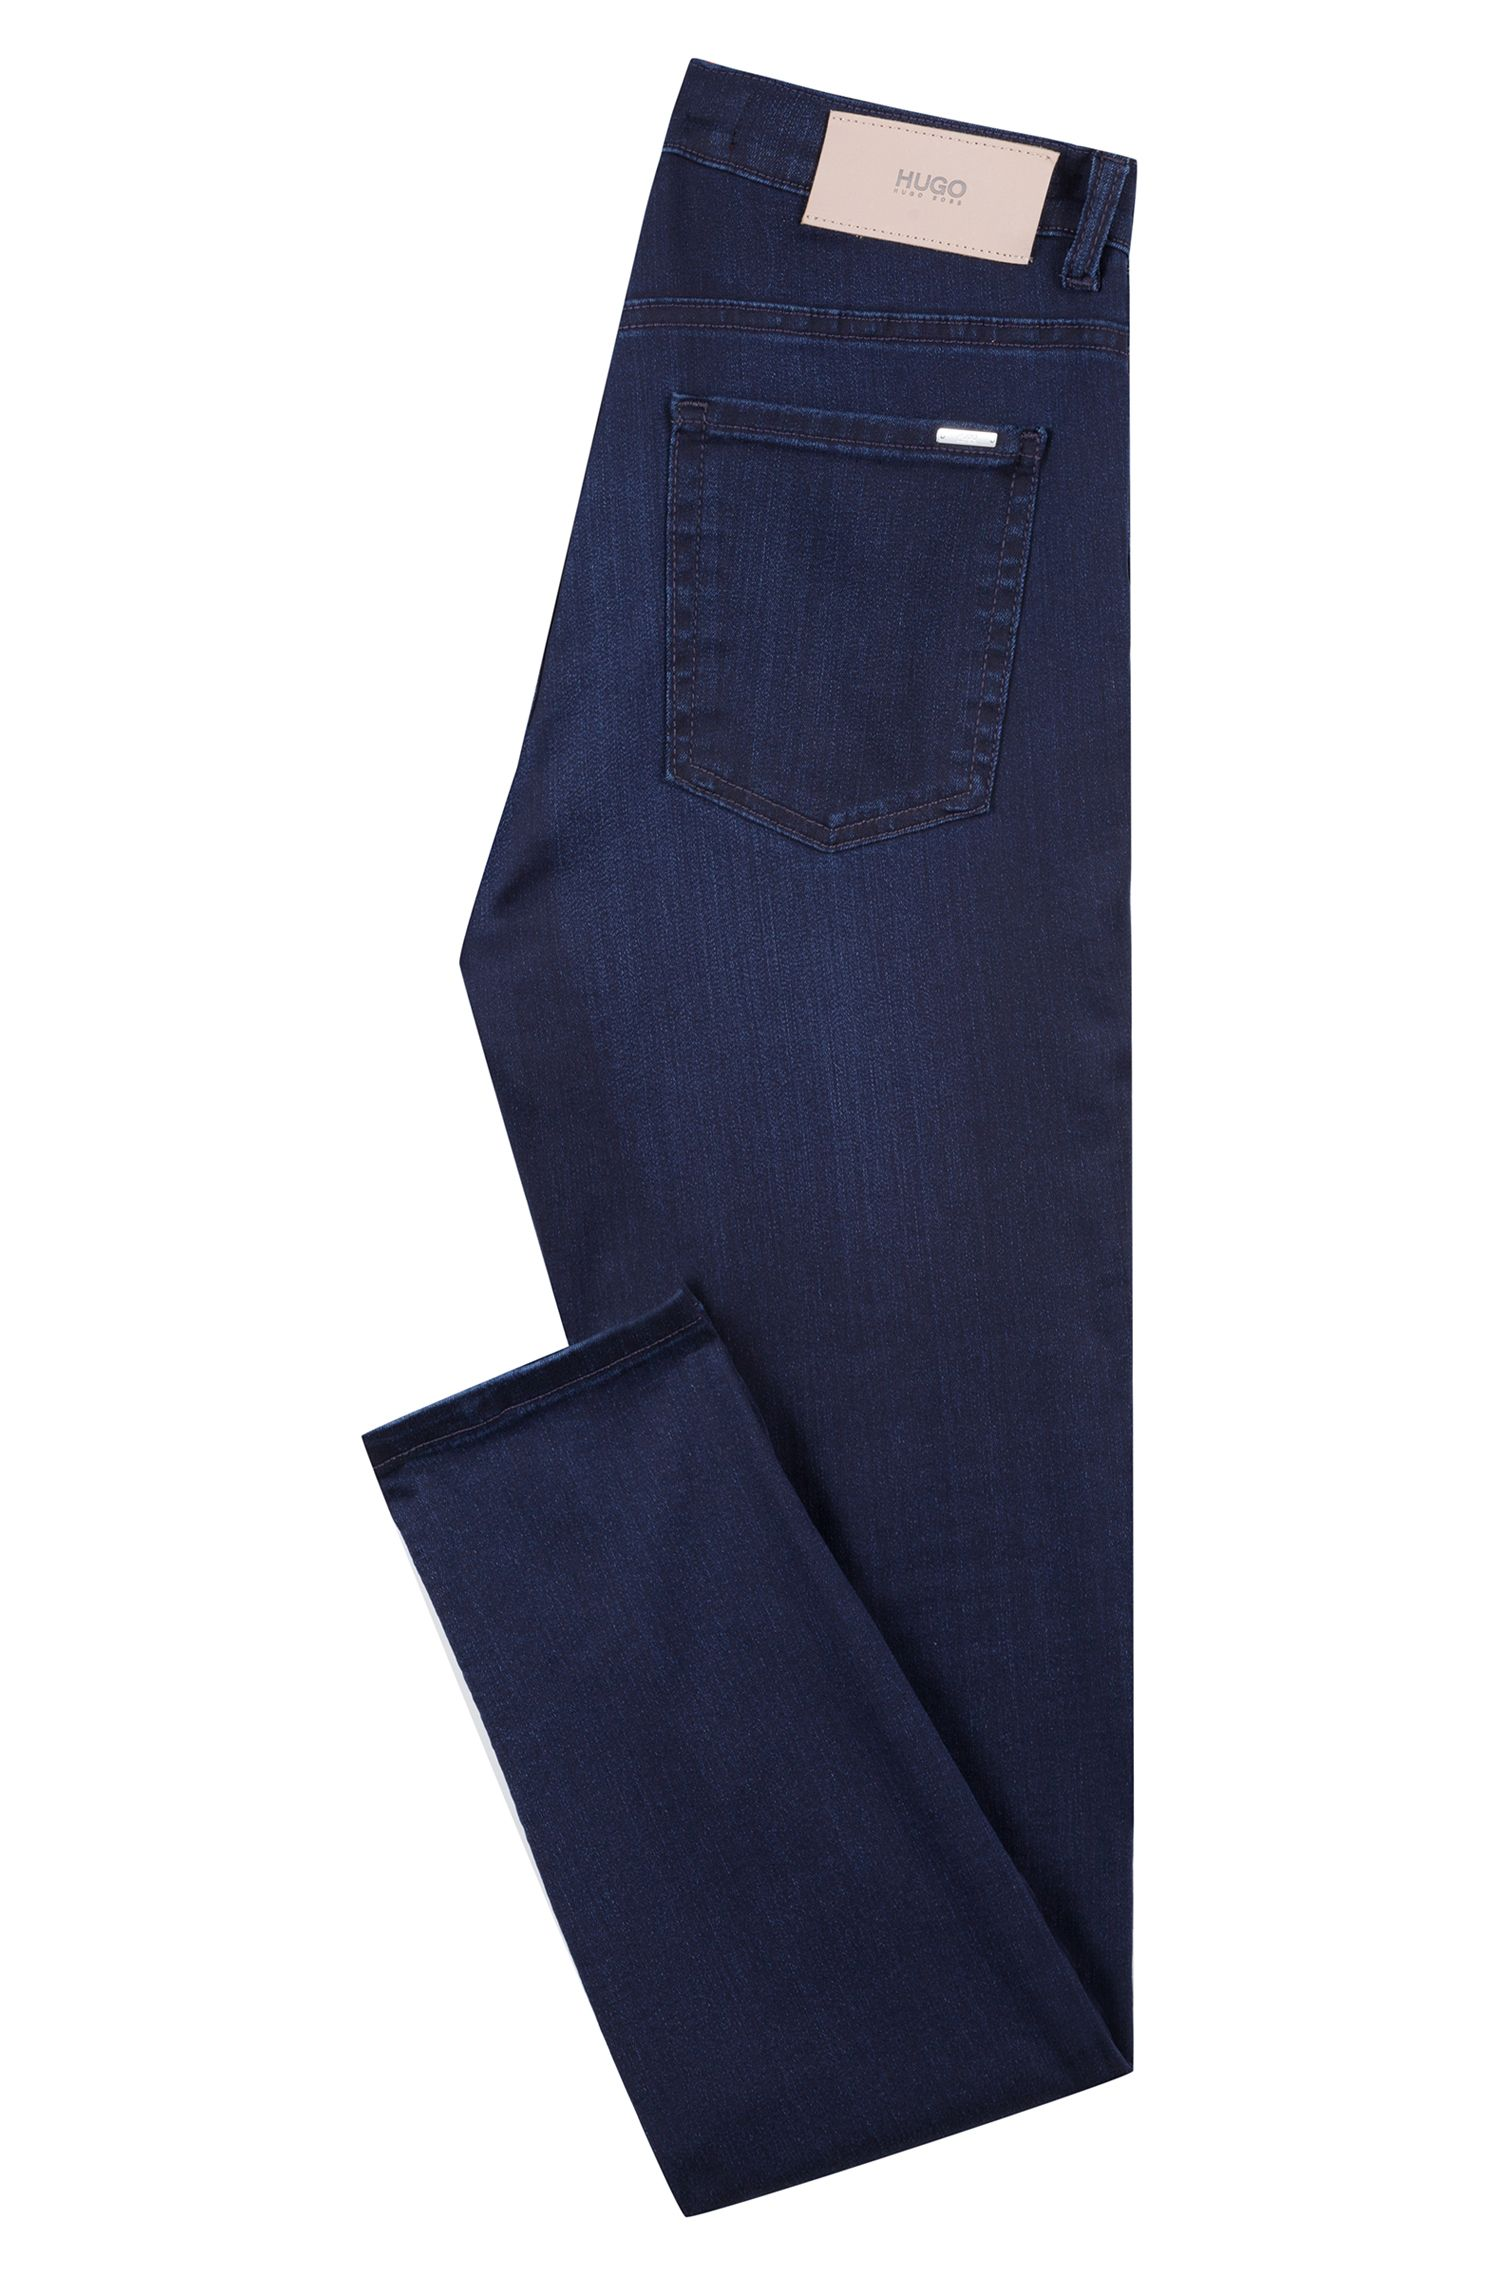 Extra-slim-fit jeans in stretch denim, Dark Blue